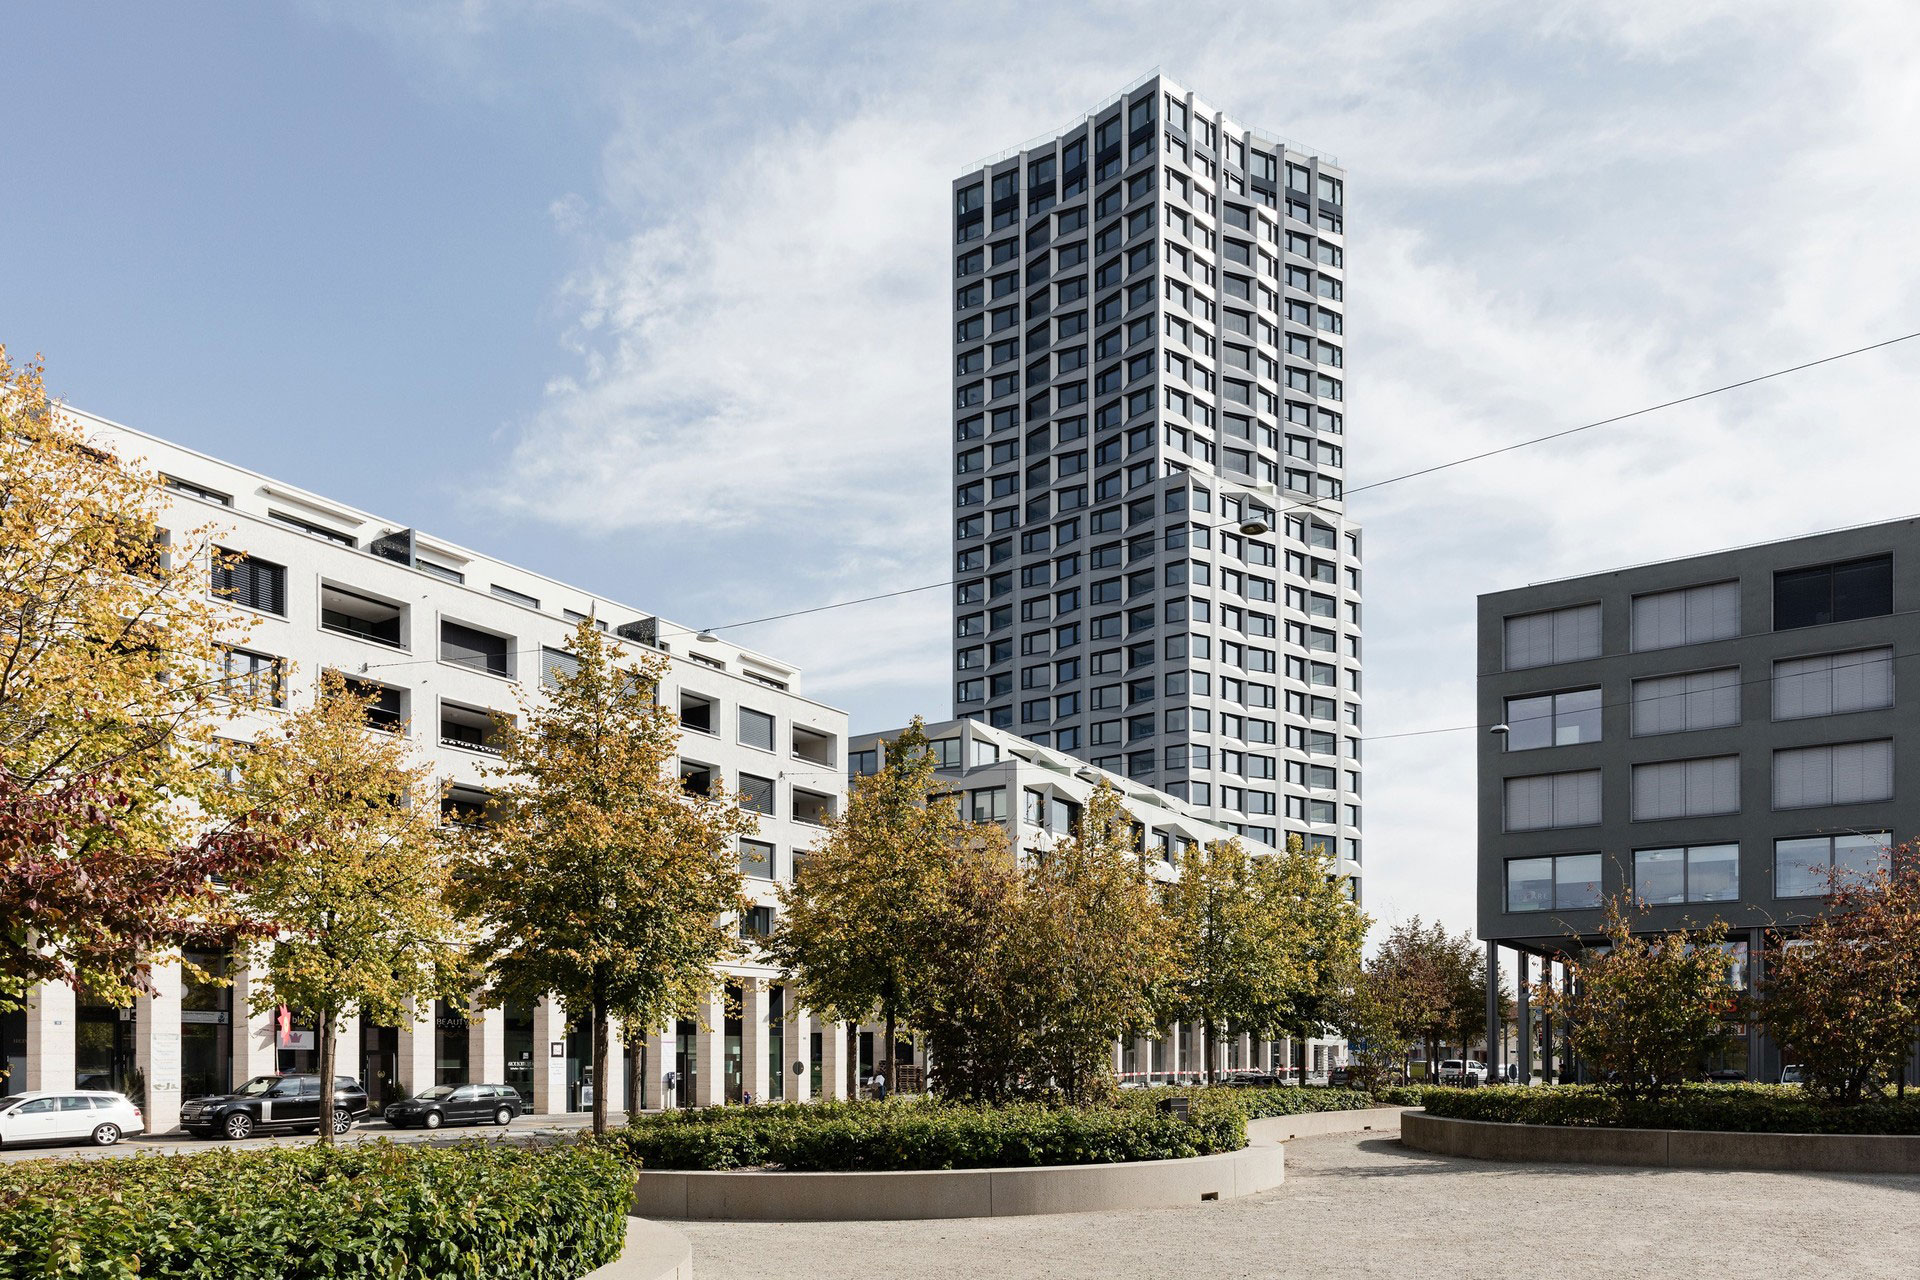 Limmat Tower, Limmattal, Lukas Huggenberger, huggenbergerfries, Zurich, Alucobond Plus, Anodized Look, Photography Beat Buhler